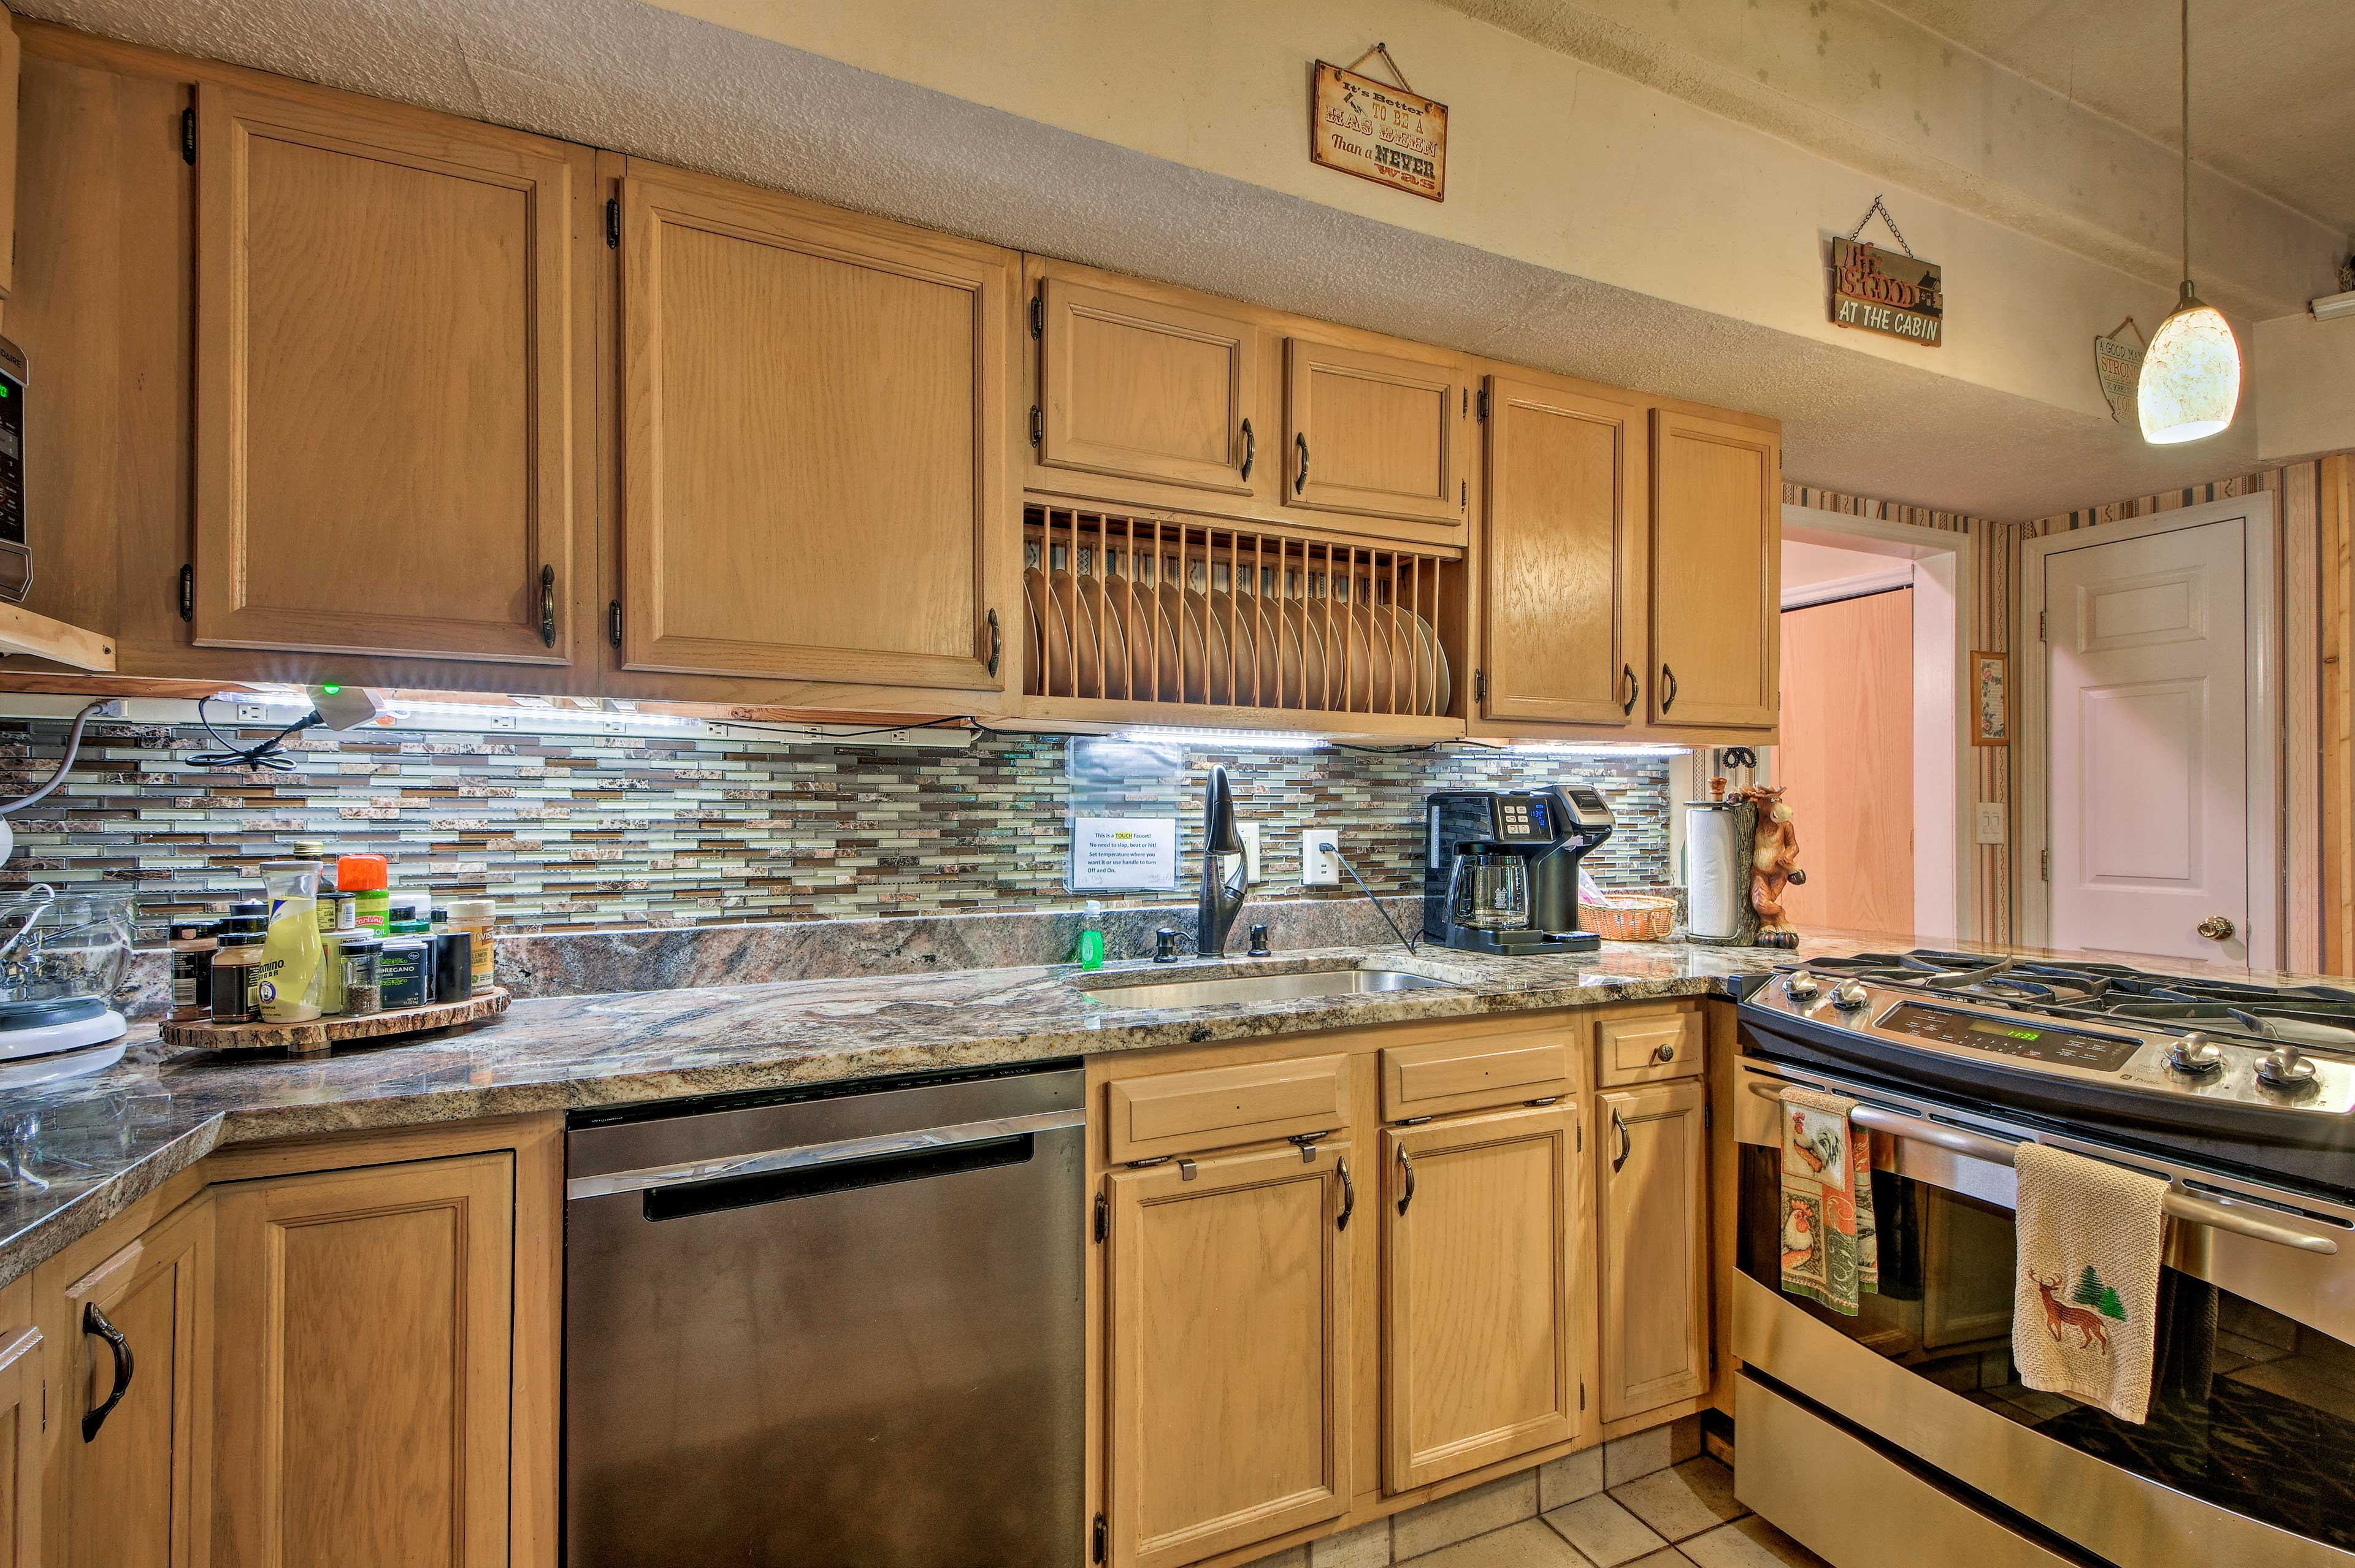 Granite lines the countertop perfectly complementing the modern appliances.